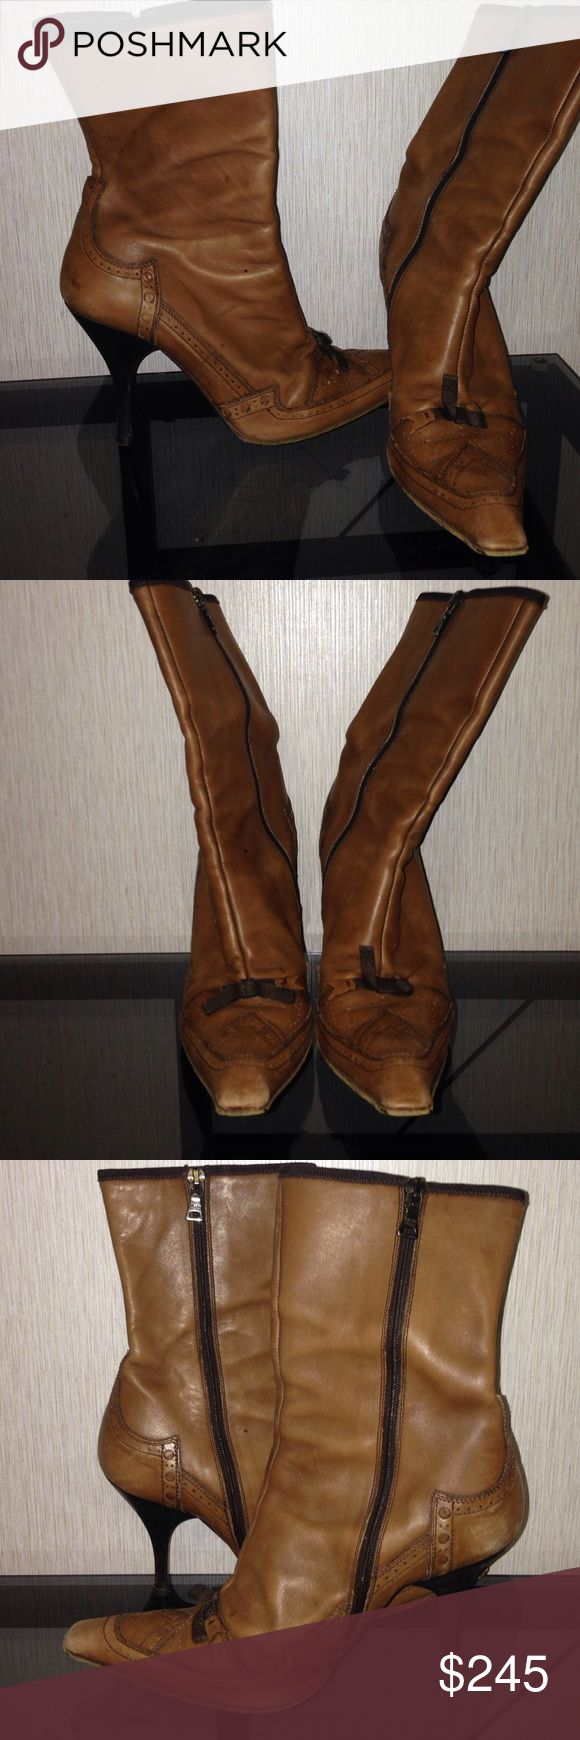 Brown prada leather vintage boots Brown leather boots with details. Vintage Prada boots!! Prada Shoes Heeled Boots